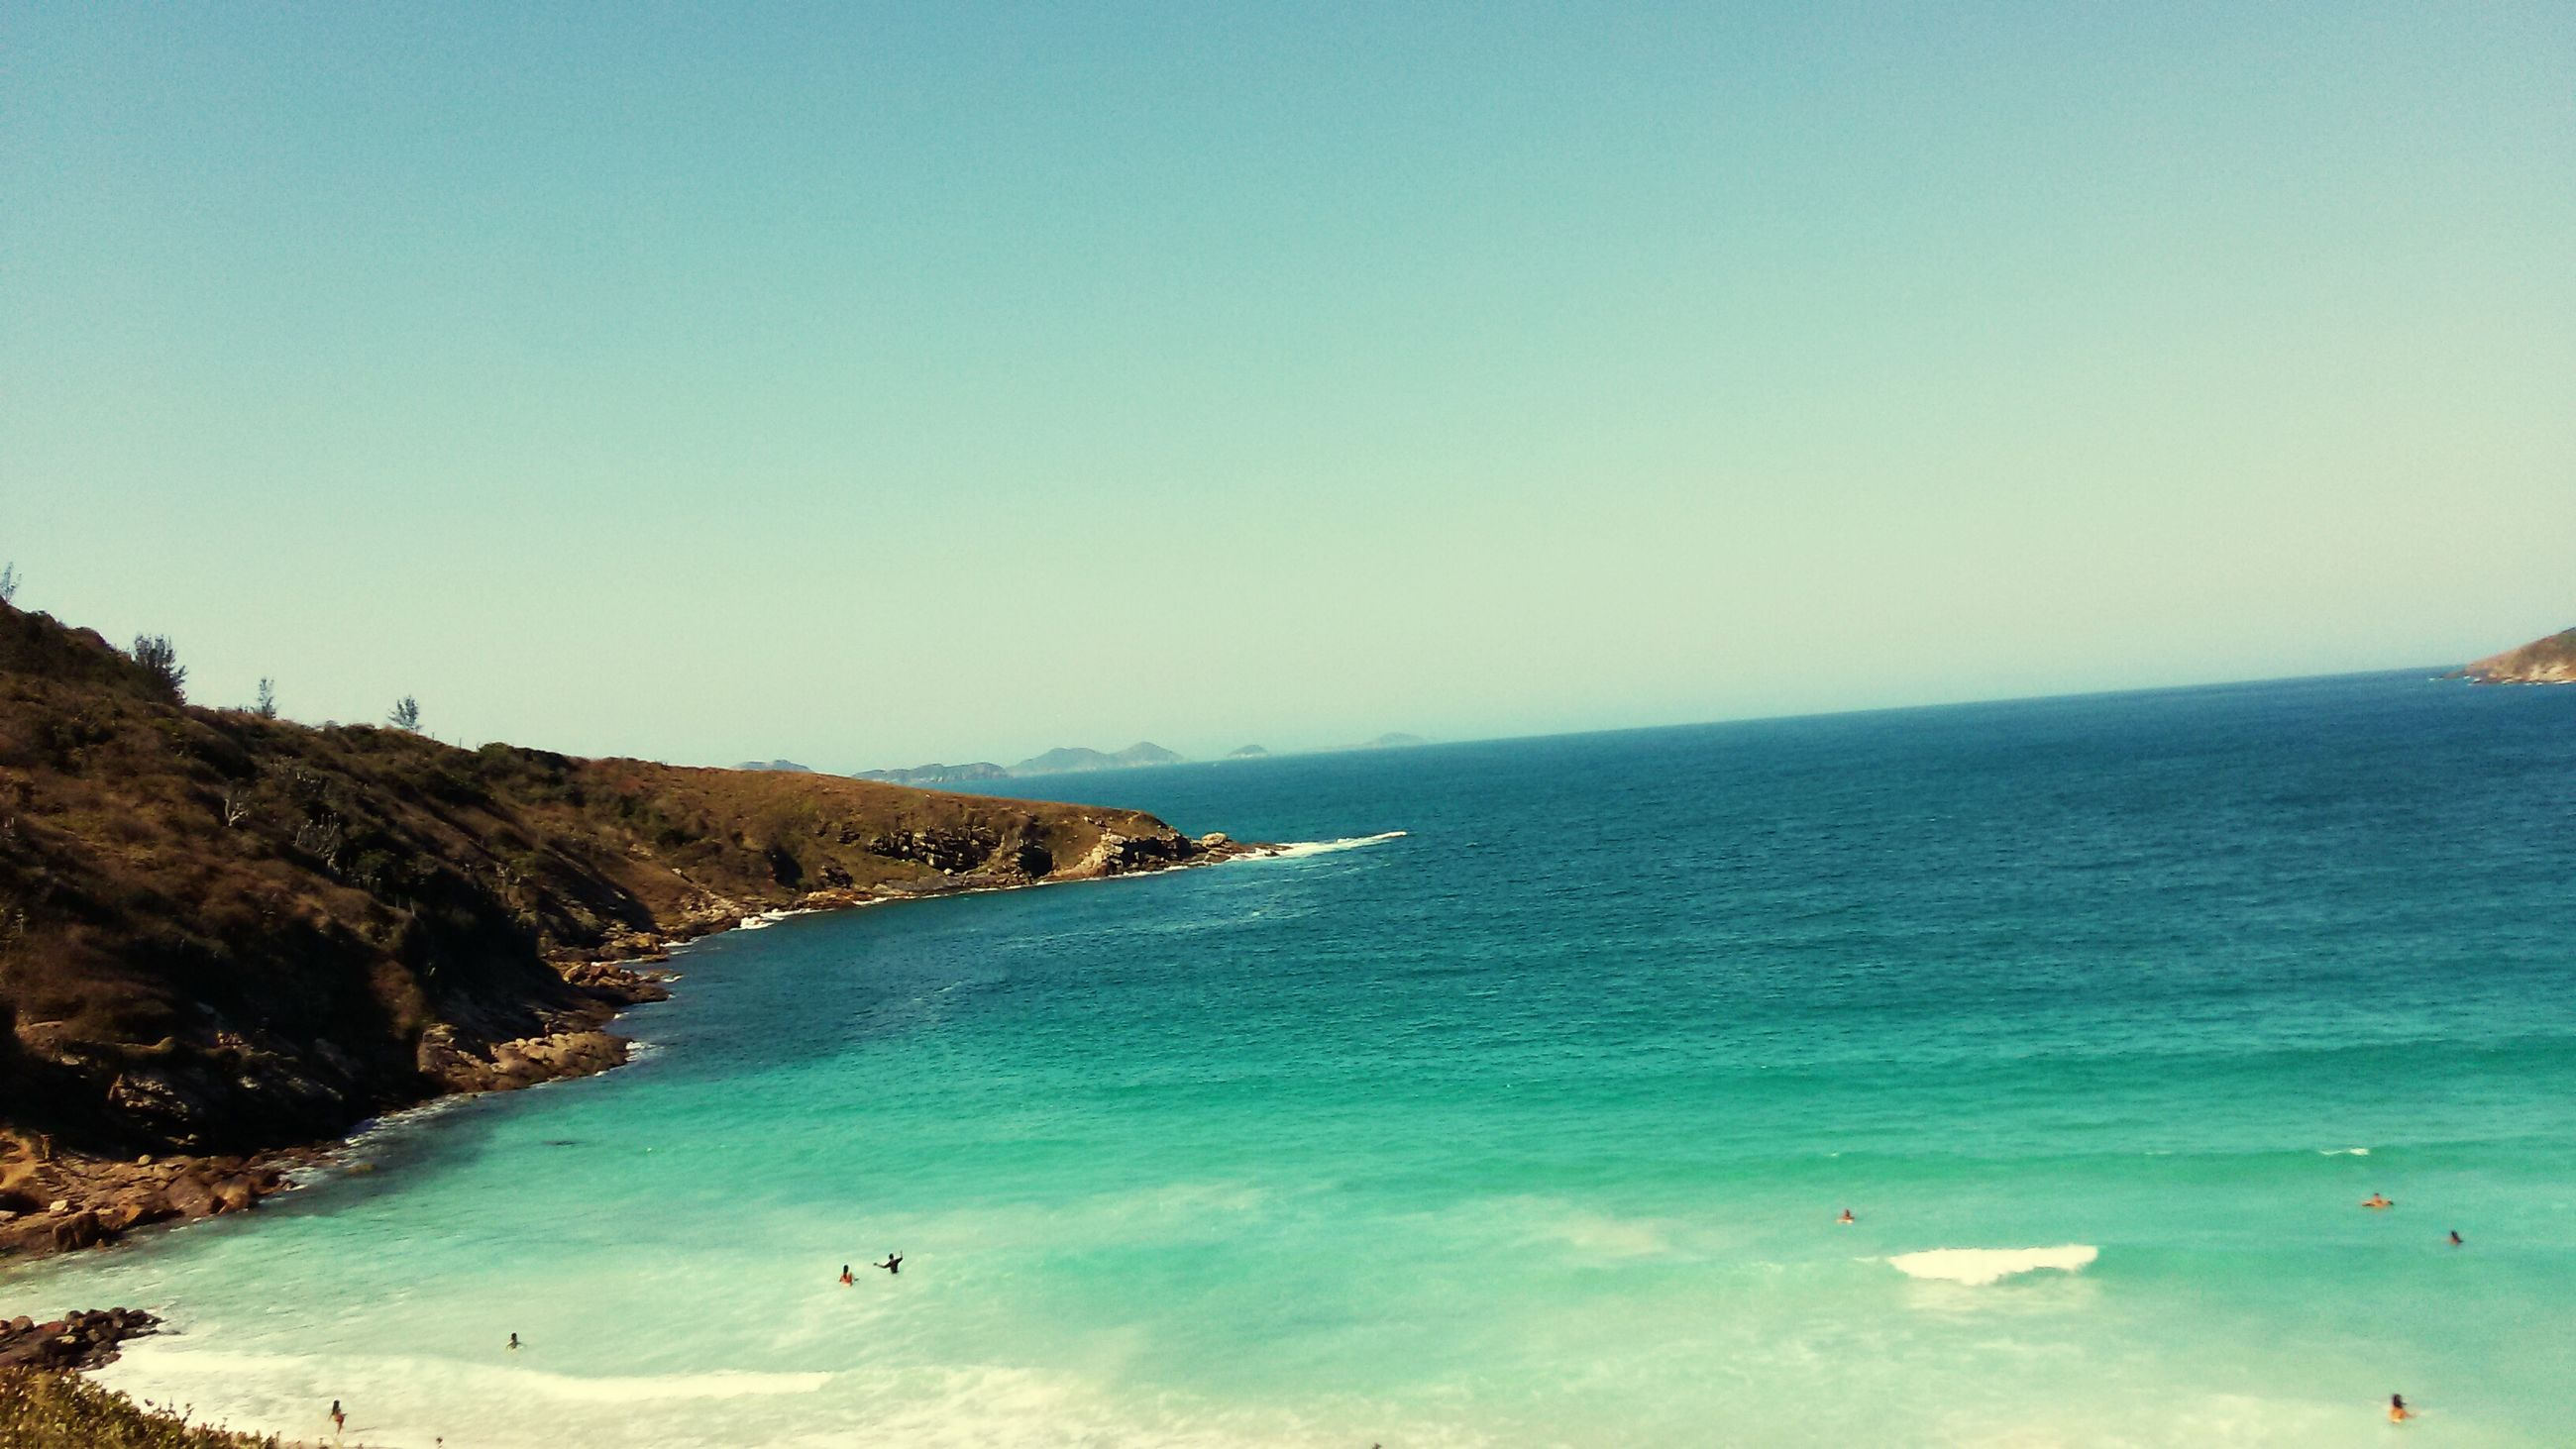 sea, horizon over water, clear sky, water, copy space, scenics, blue, tranquil scene, tranquility, beach, beauty in nature, nature, shore, idyllic, vacations, coastline, seascape, day, outdoors, incidental people